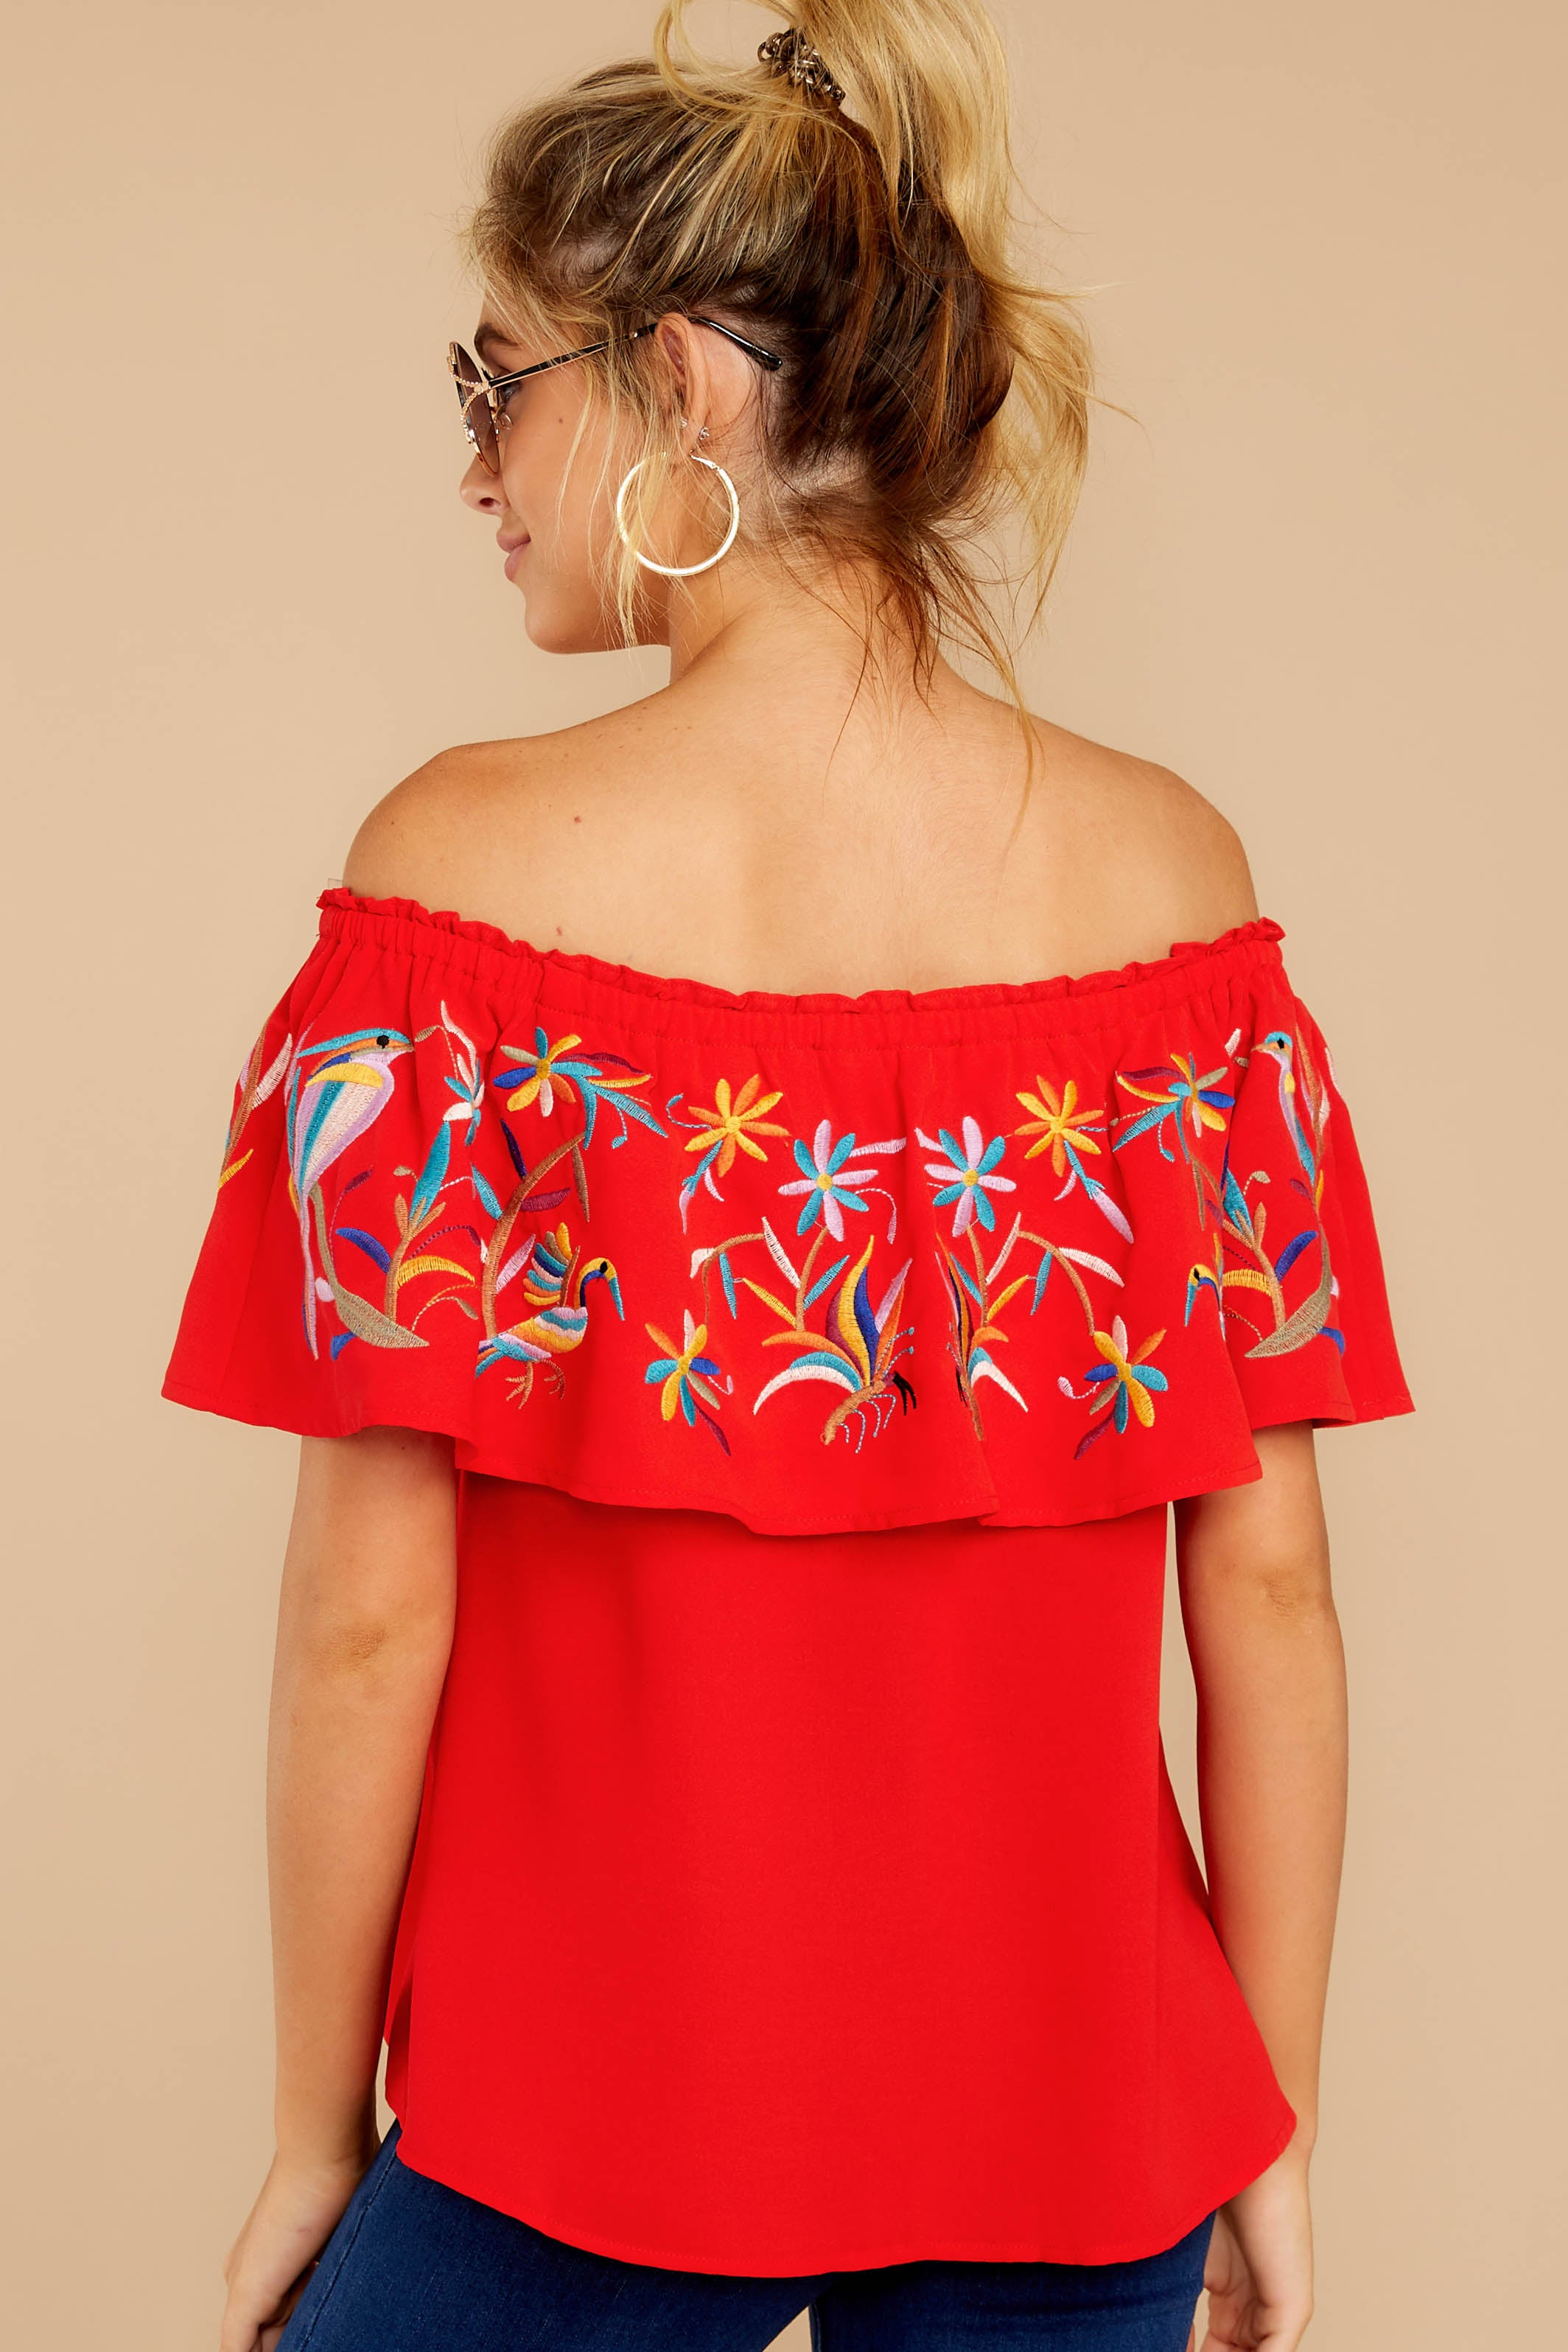 7 Flutter Away With Me Red Embroidered Top at reddressboutique.com